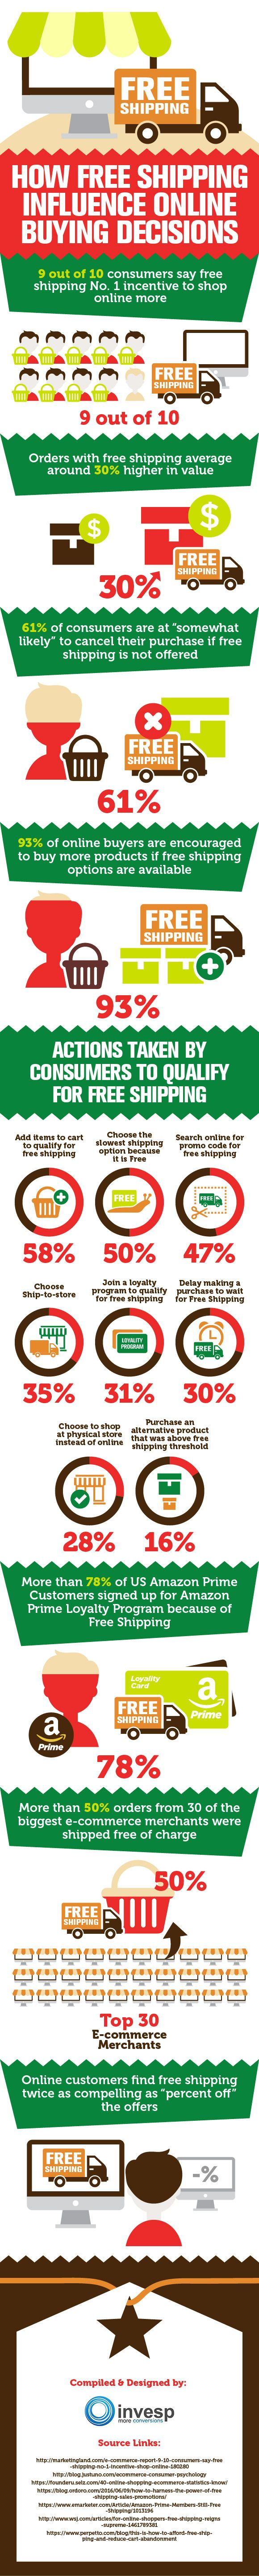 Is Free Shipping Worth It? Stats Ecommerce Website Owners Need to Know #Infographic